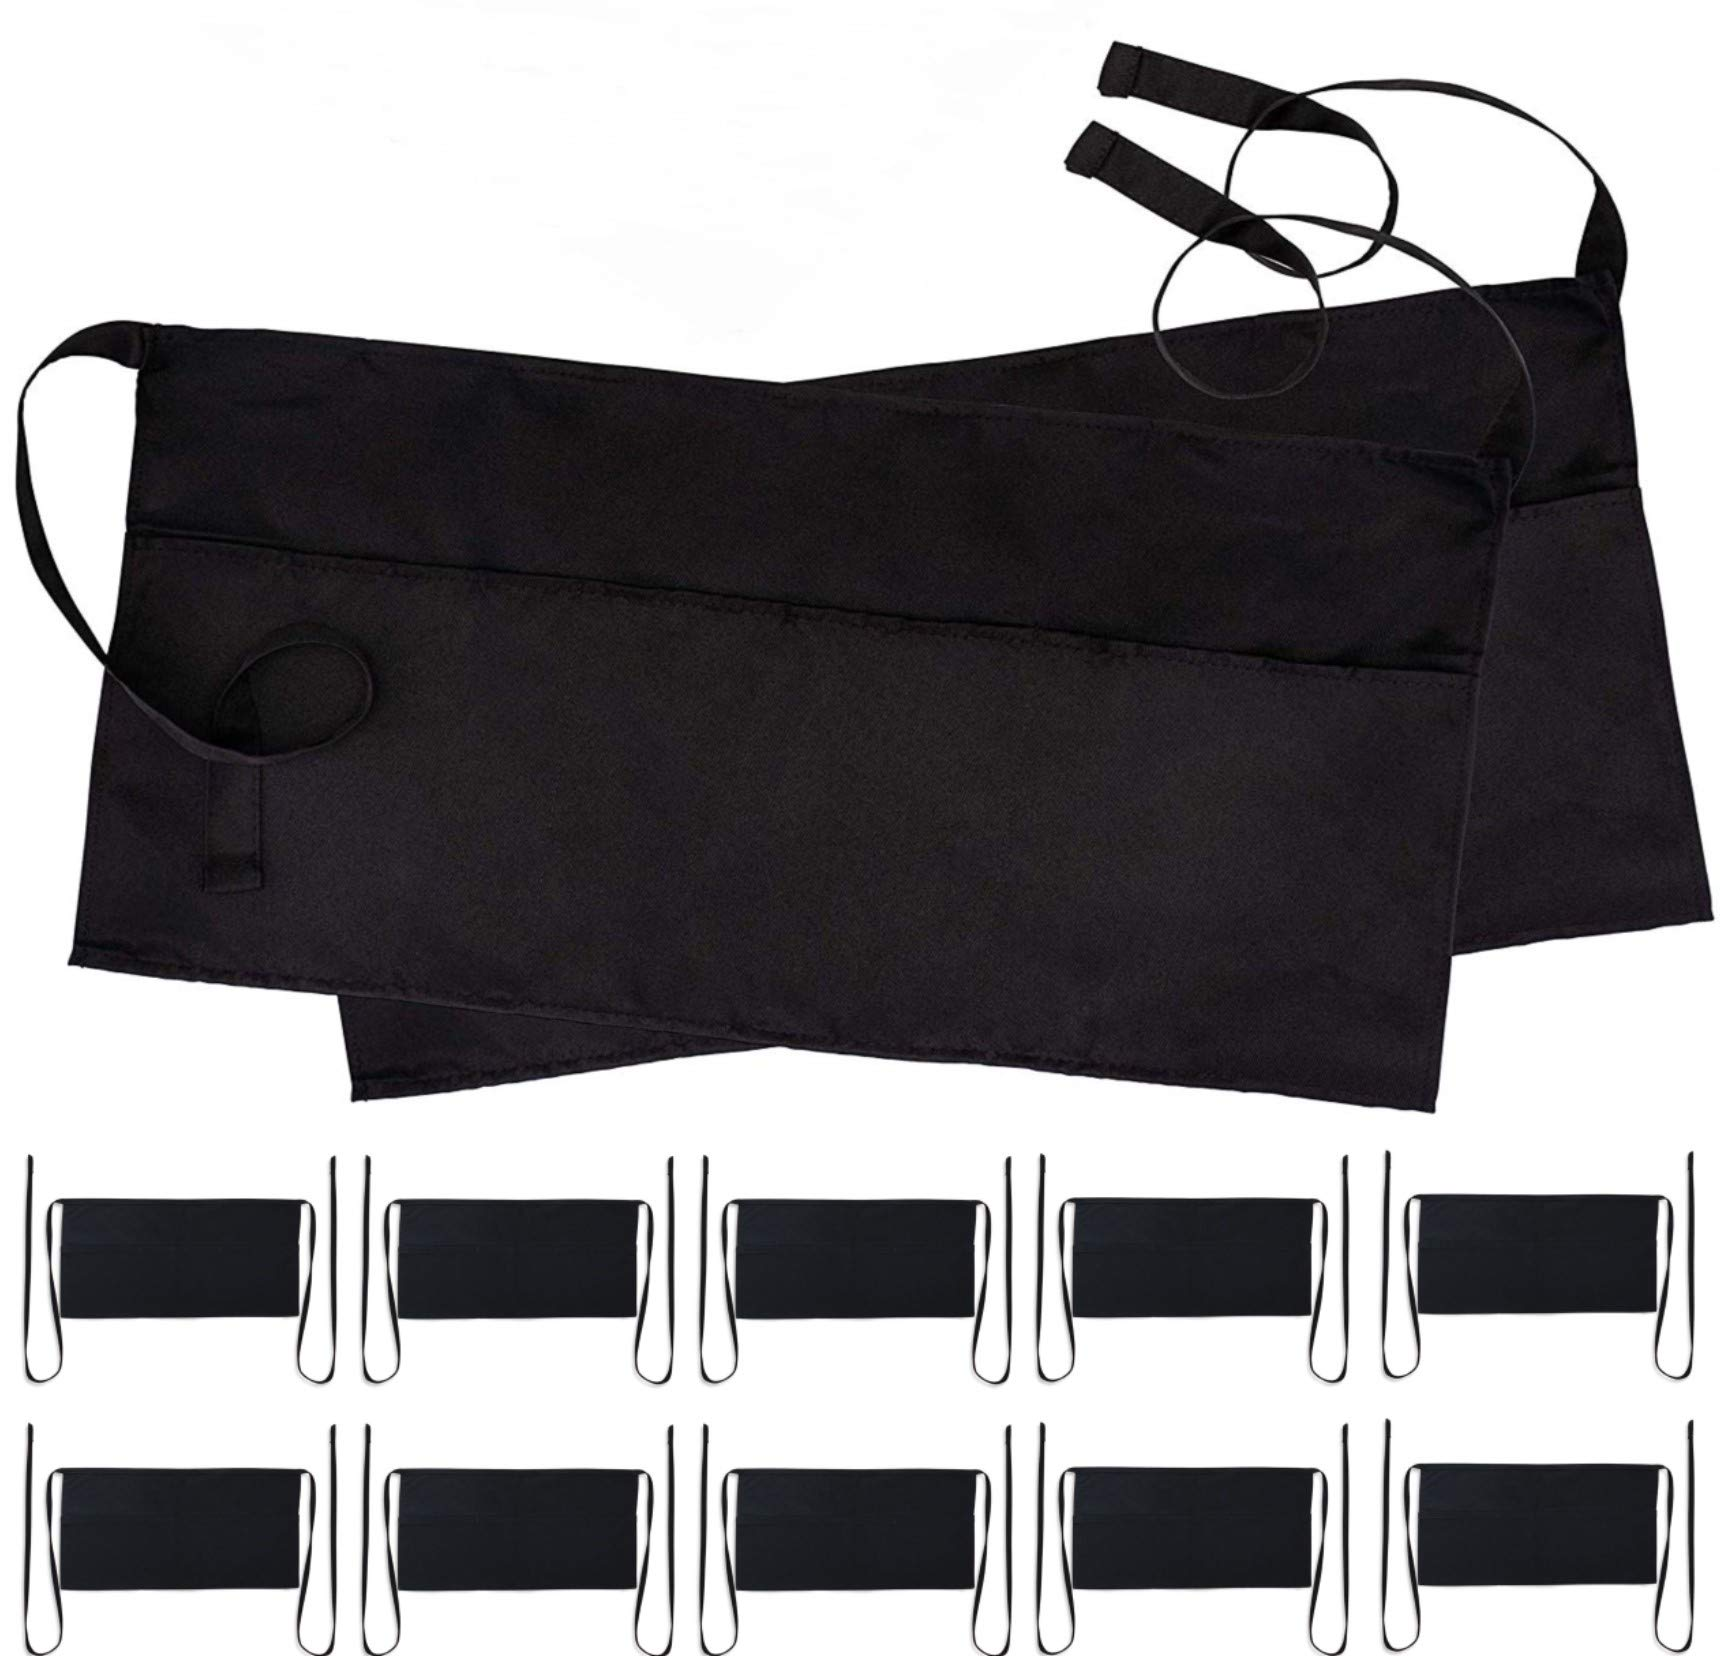 Black Server Waitress Waist Aprons - Set of 12 Professional Kitchen Restaurant Bistro Half Aprons in Bulk for Men Women with 3 Pockets - 12 Pack by White Classic